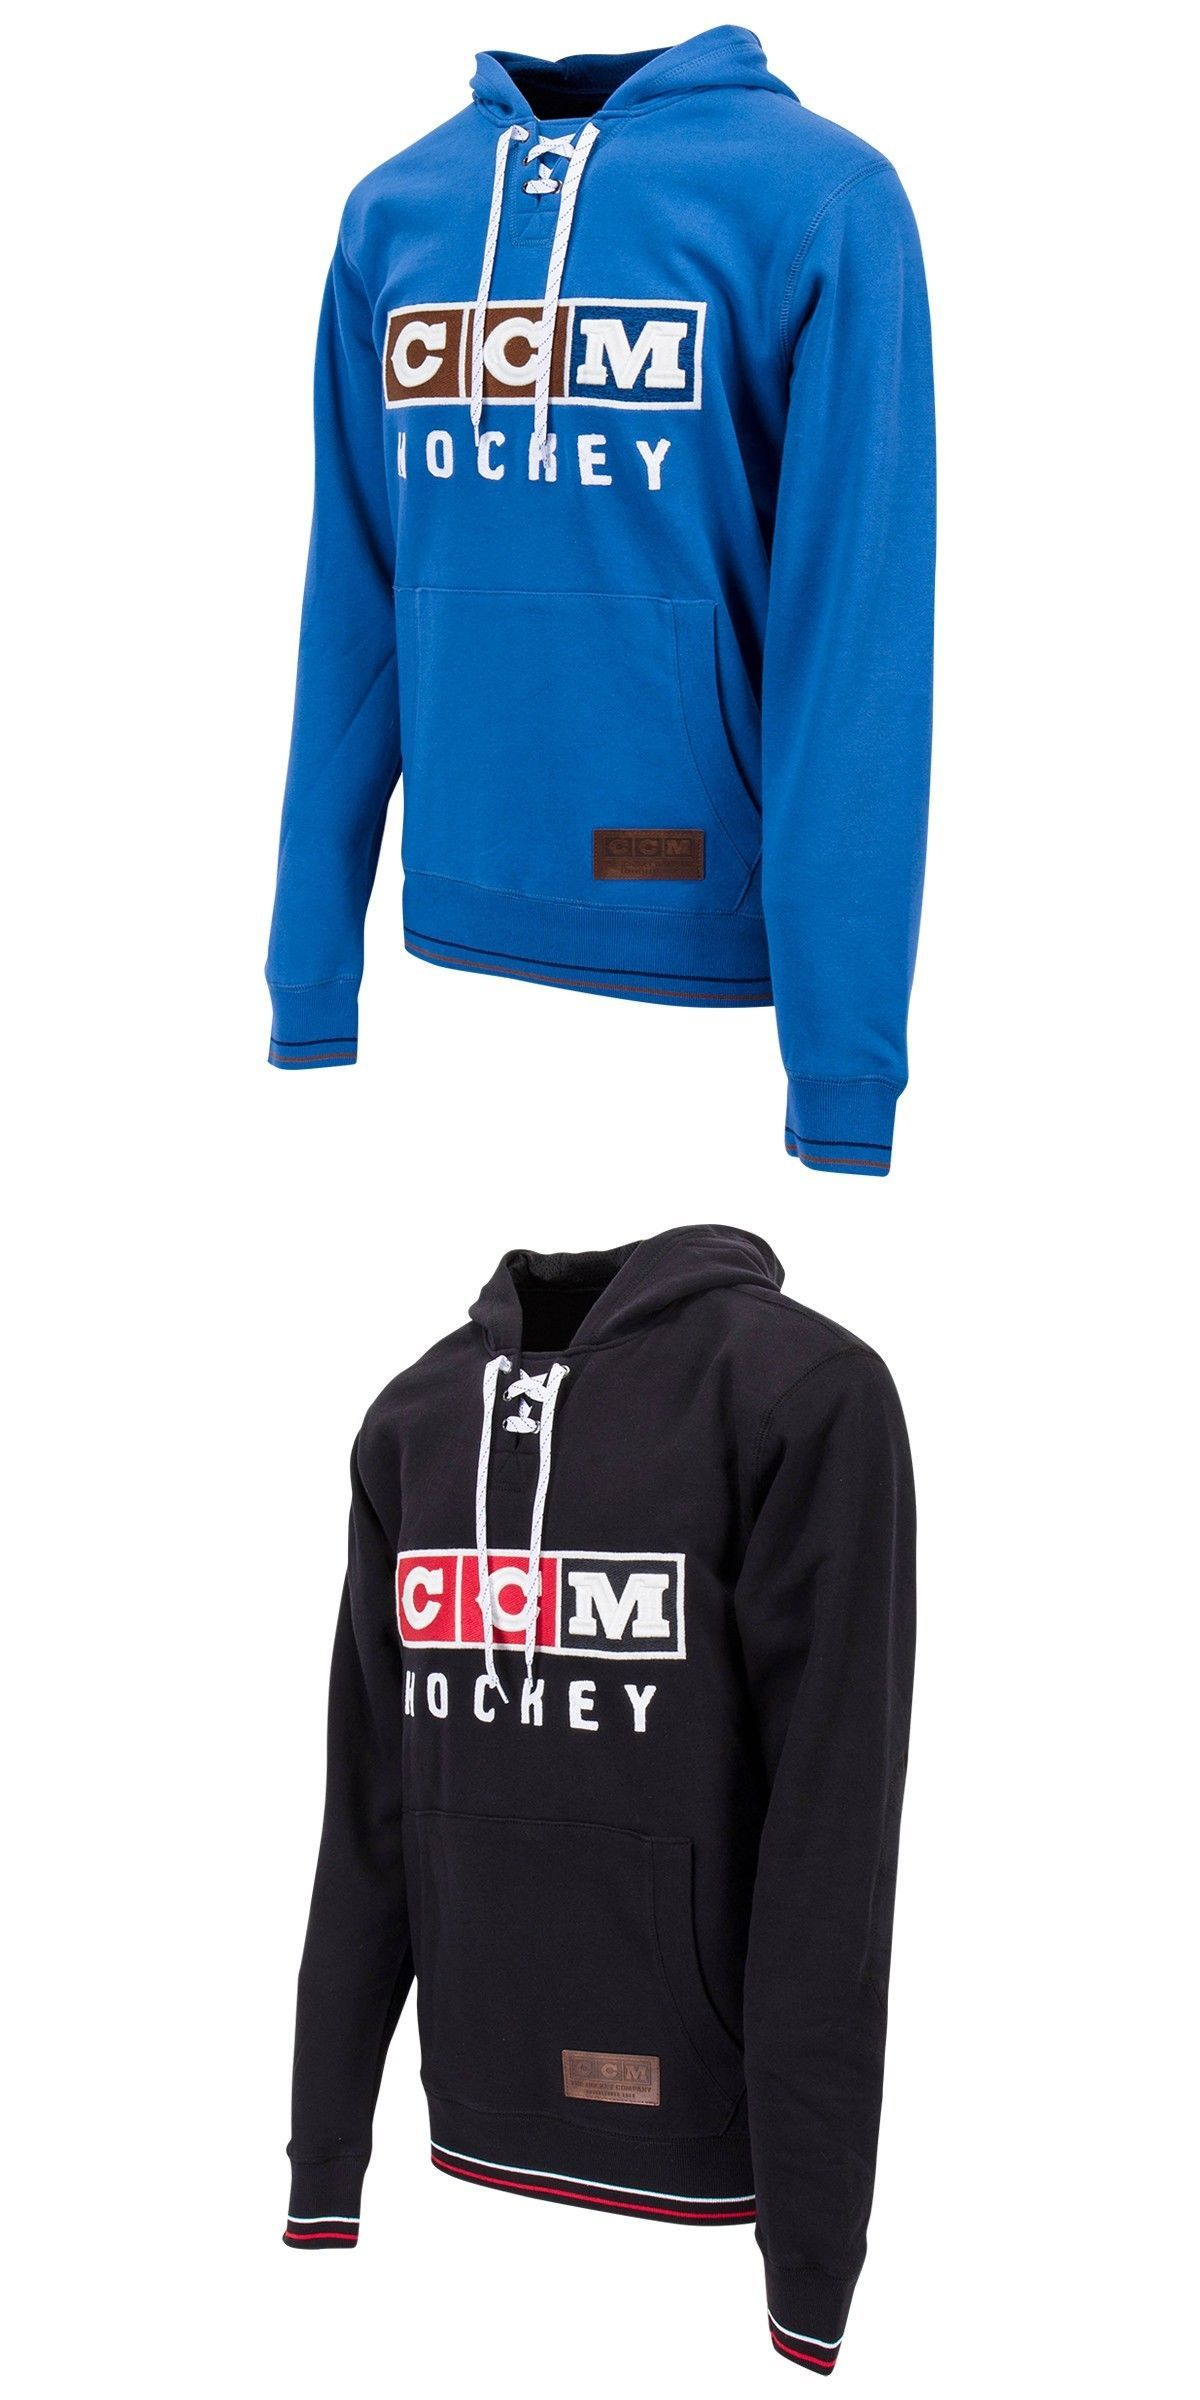 Clothing 159121  Ccm Hockey Classic Lace Neck Adult Senior Hoody Sweatshirt--  Blue And Black S-Xl -  BUY IT NOW ONLY   40 on  eBay  clothing  hockey ... 5f7d682a3